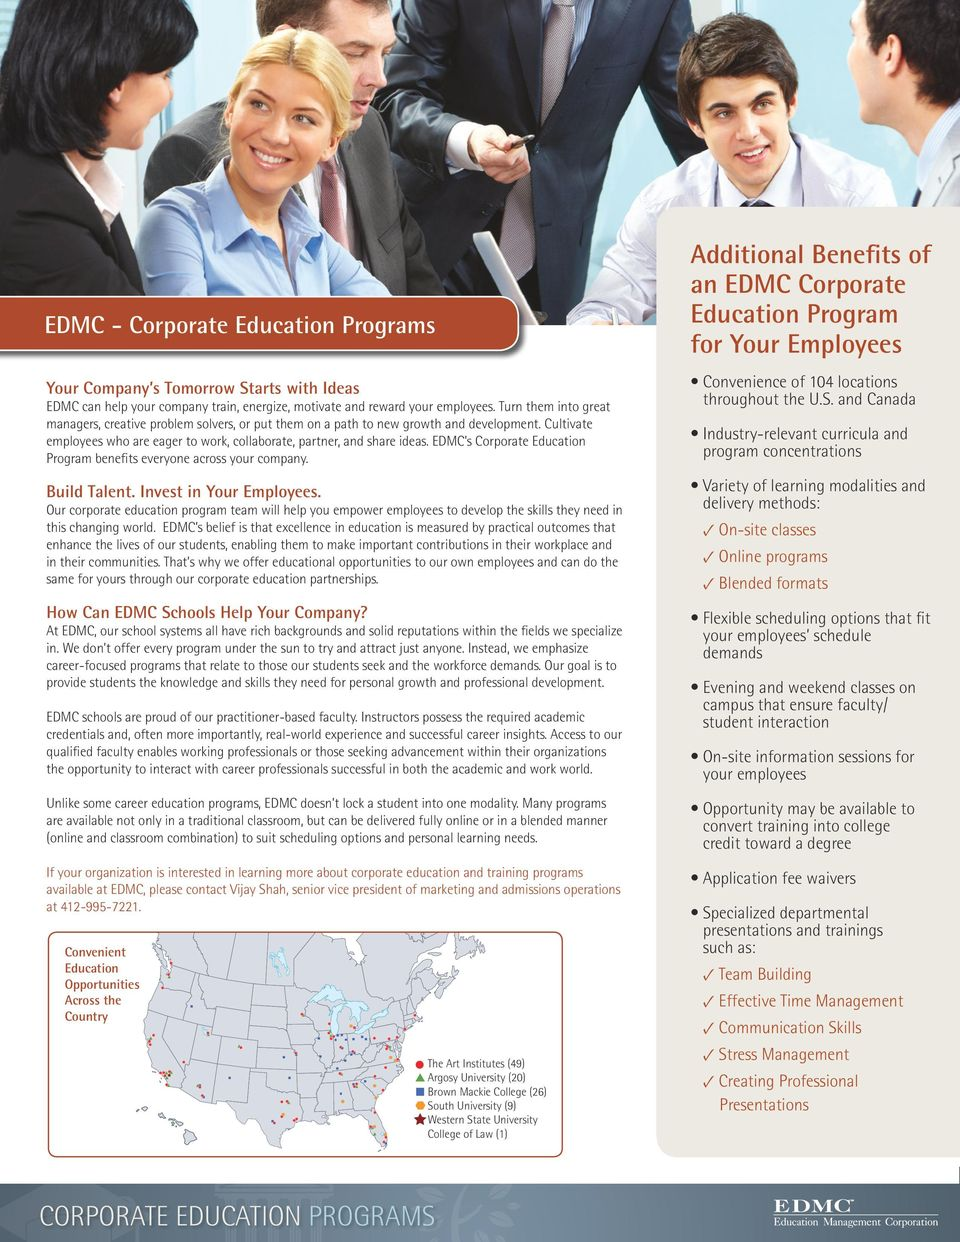 EDMC s Corporate Education Program benefits everyone across your company. Build Talent. Invest in Your Employees.